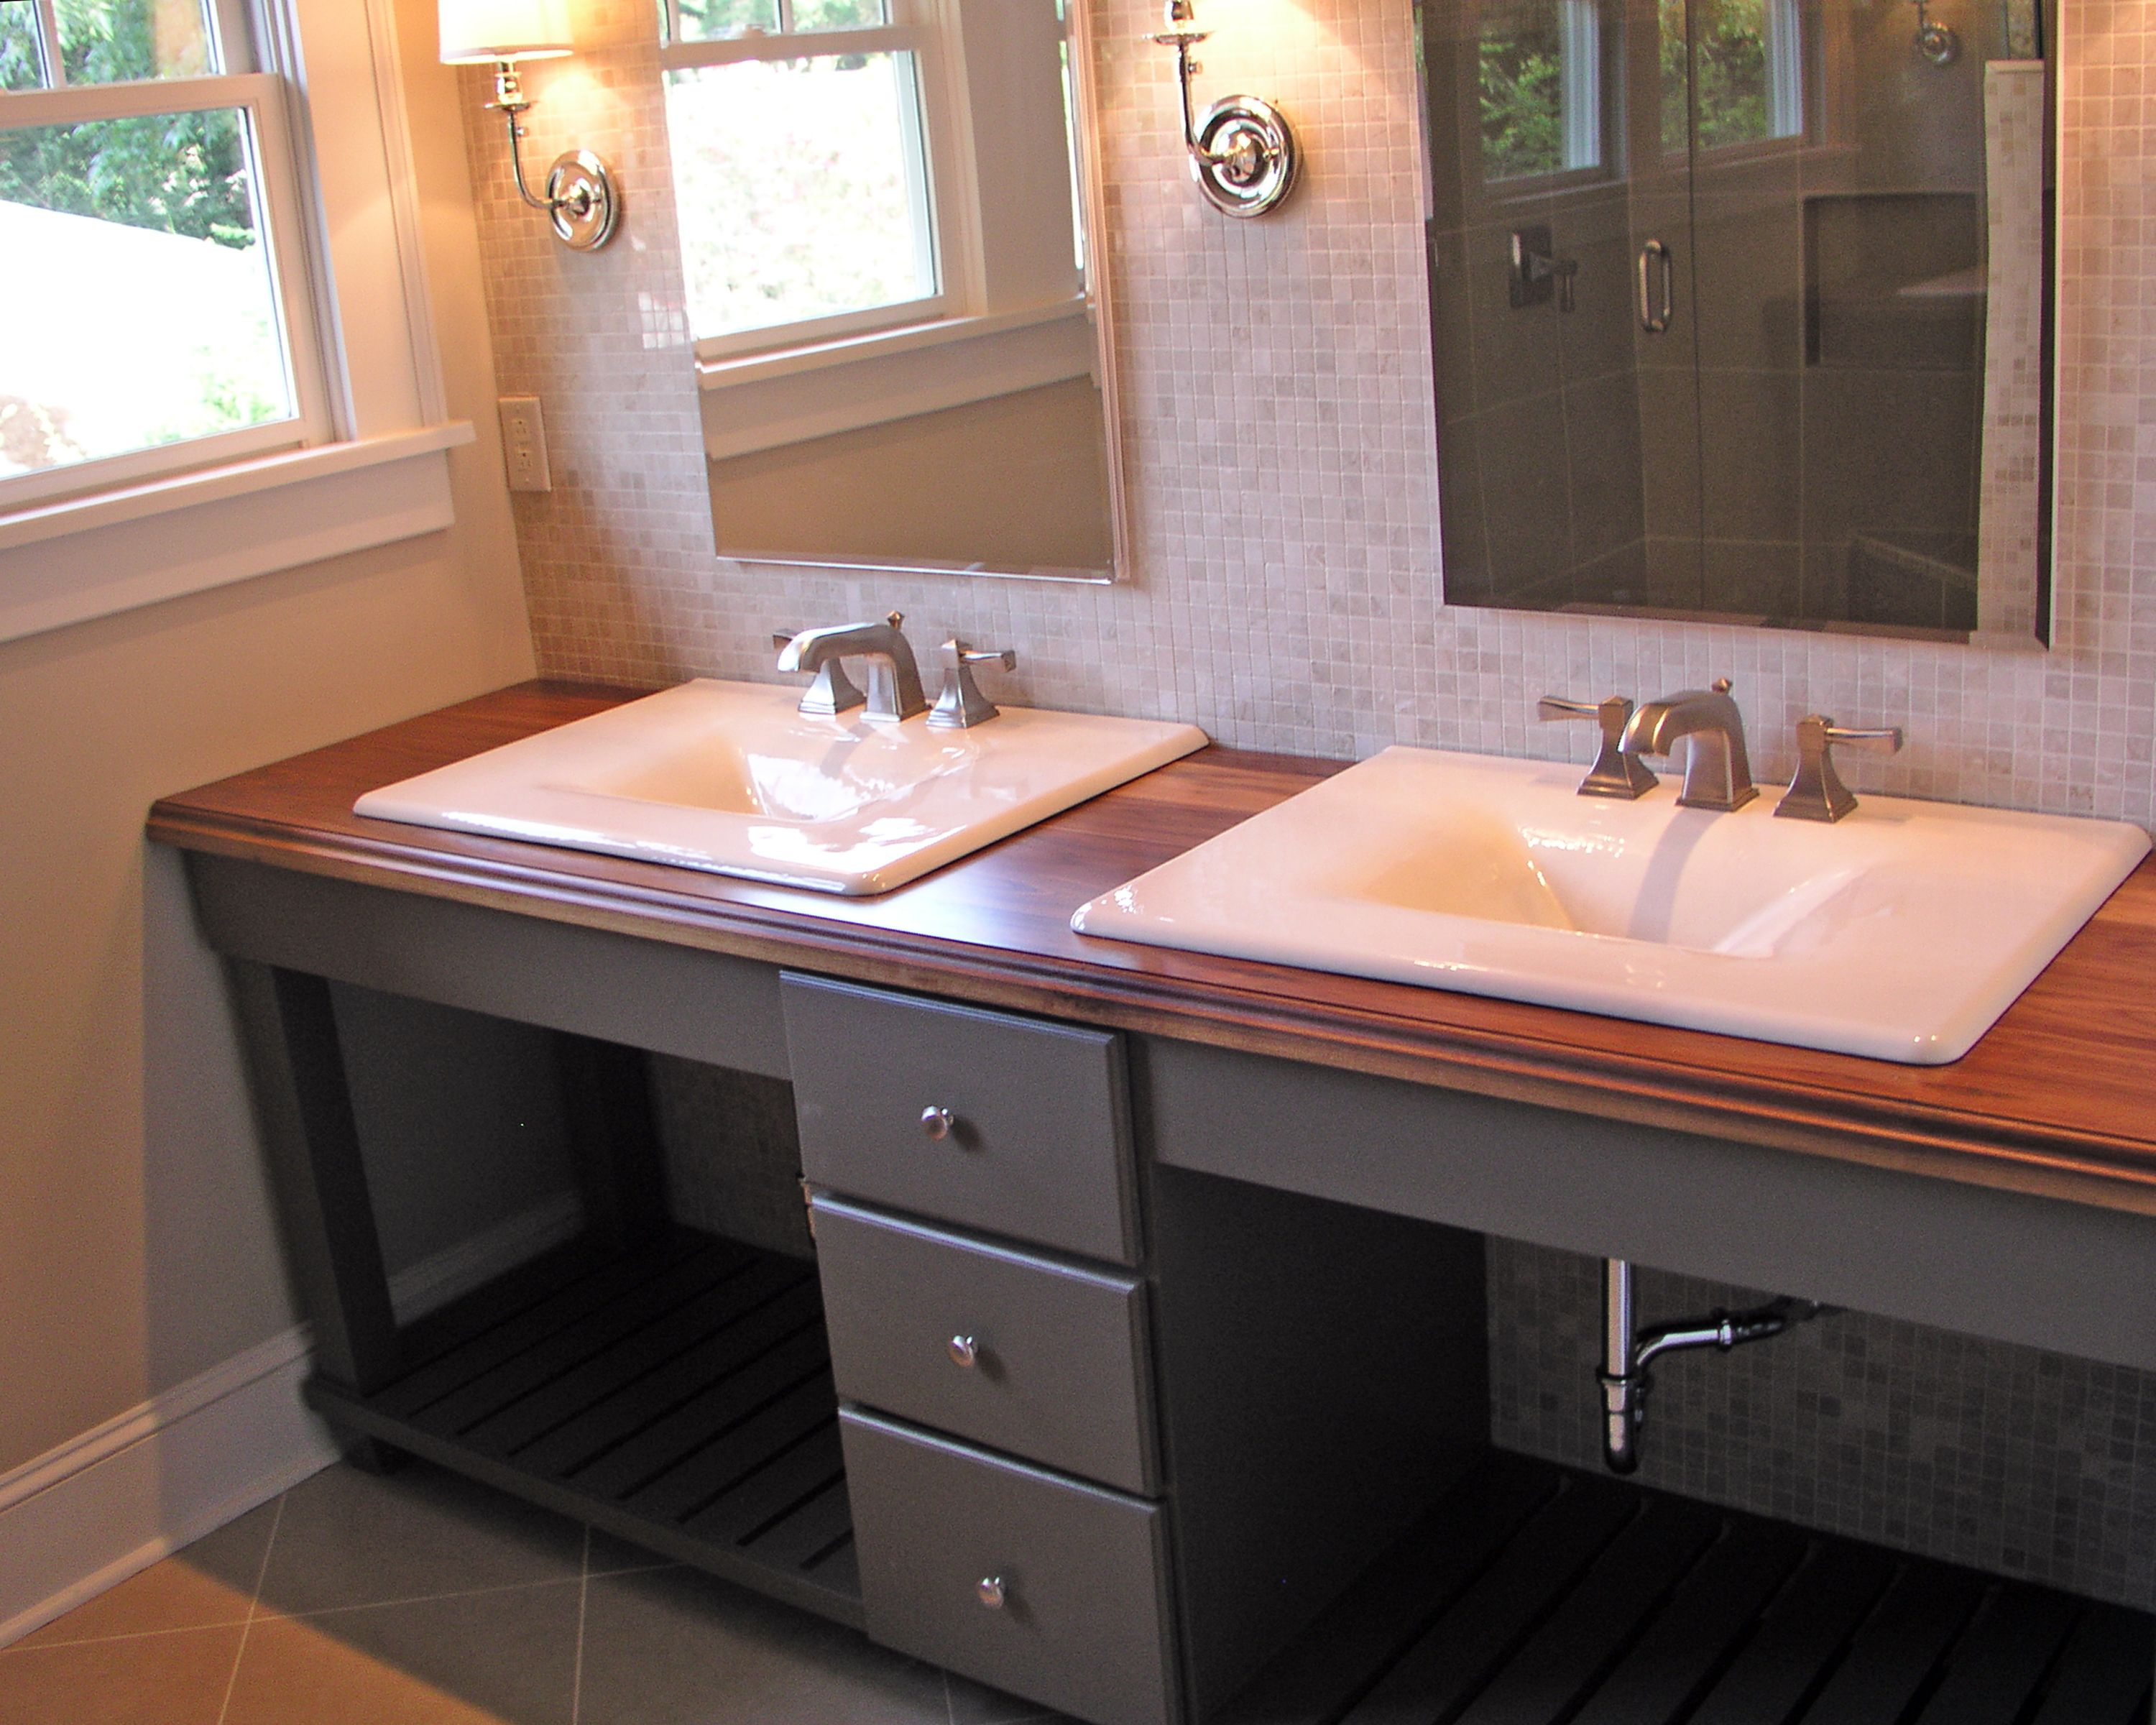 The Bathroom Sink Vanity With Vessel Sink Advantages And